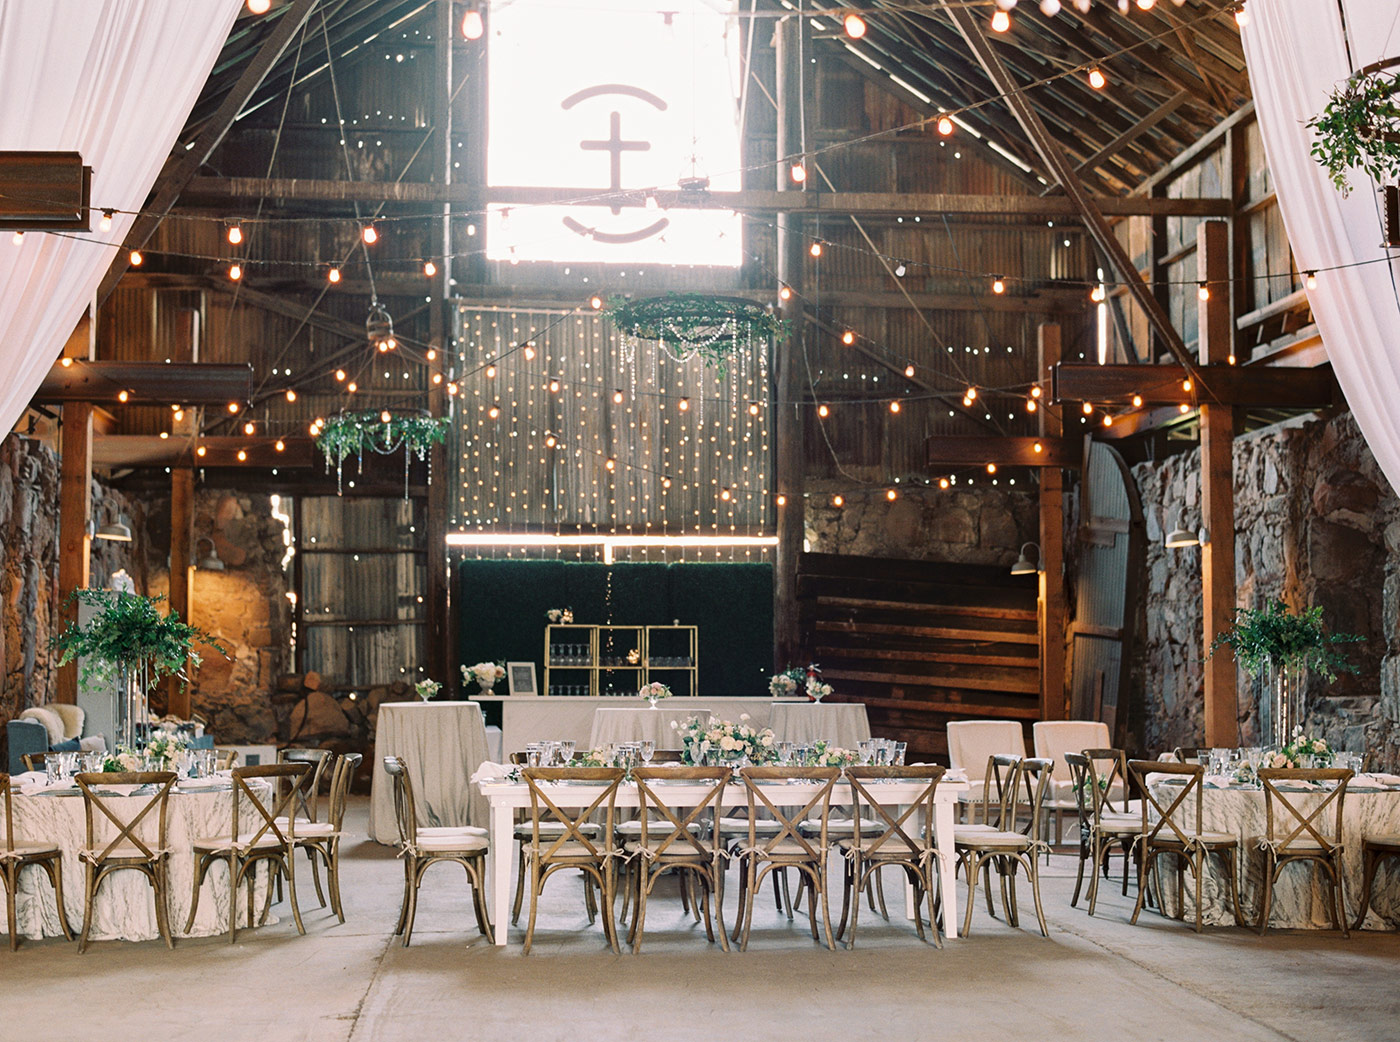 Santa Margarita Ranch Wedding Designed by Danae Grace Events and Photographed by Ashley Ludaescher Photography